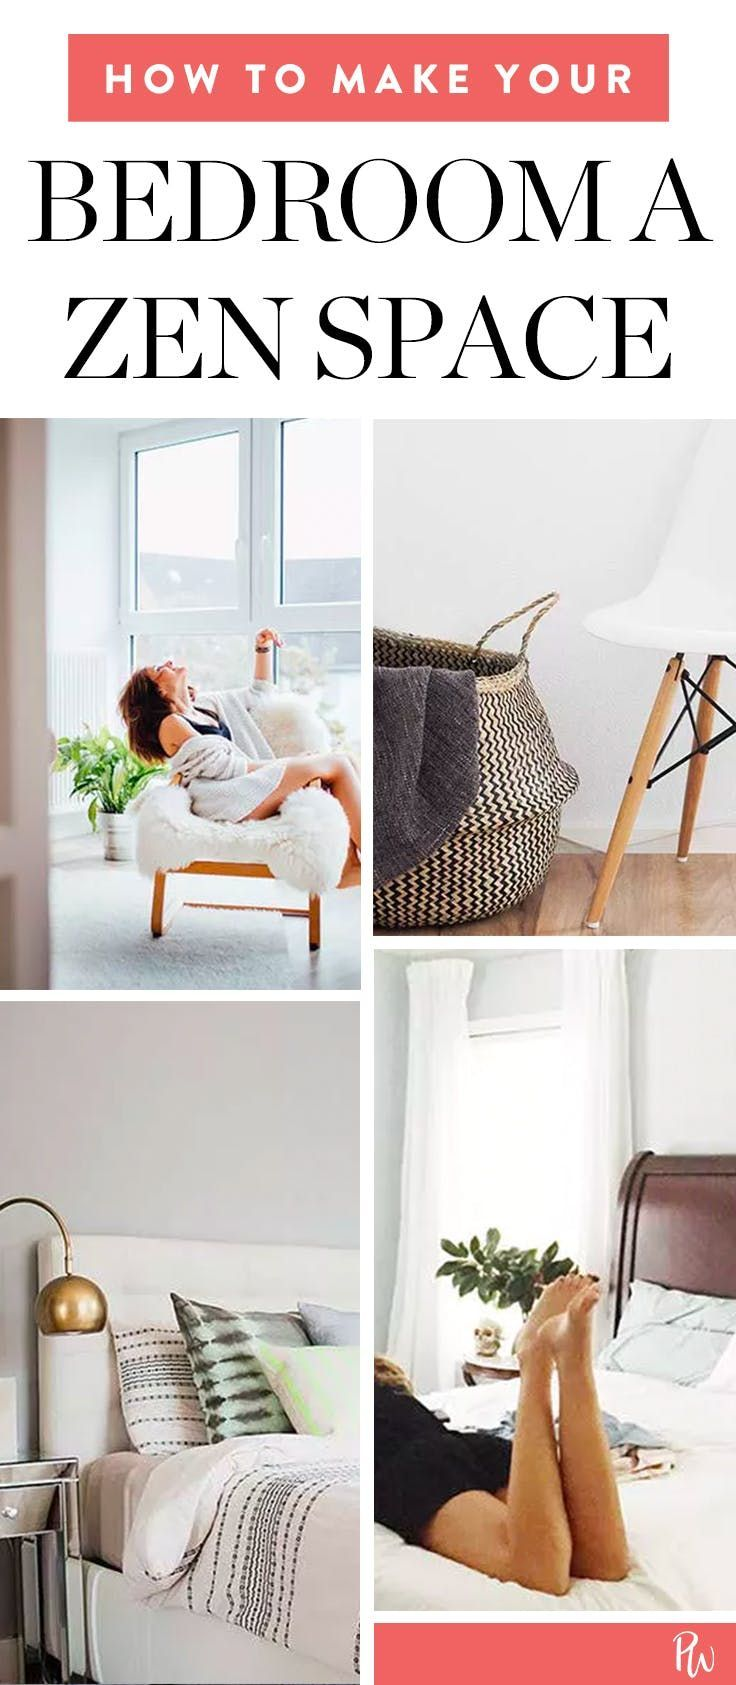 Pin On Self Care Decor And Rooms